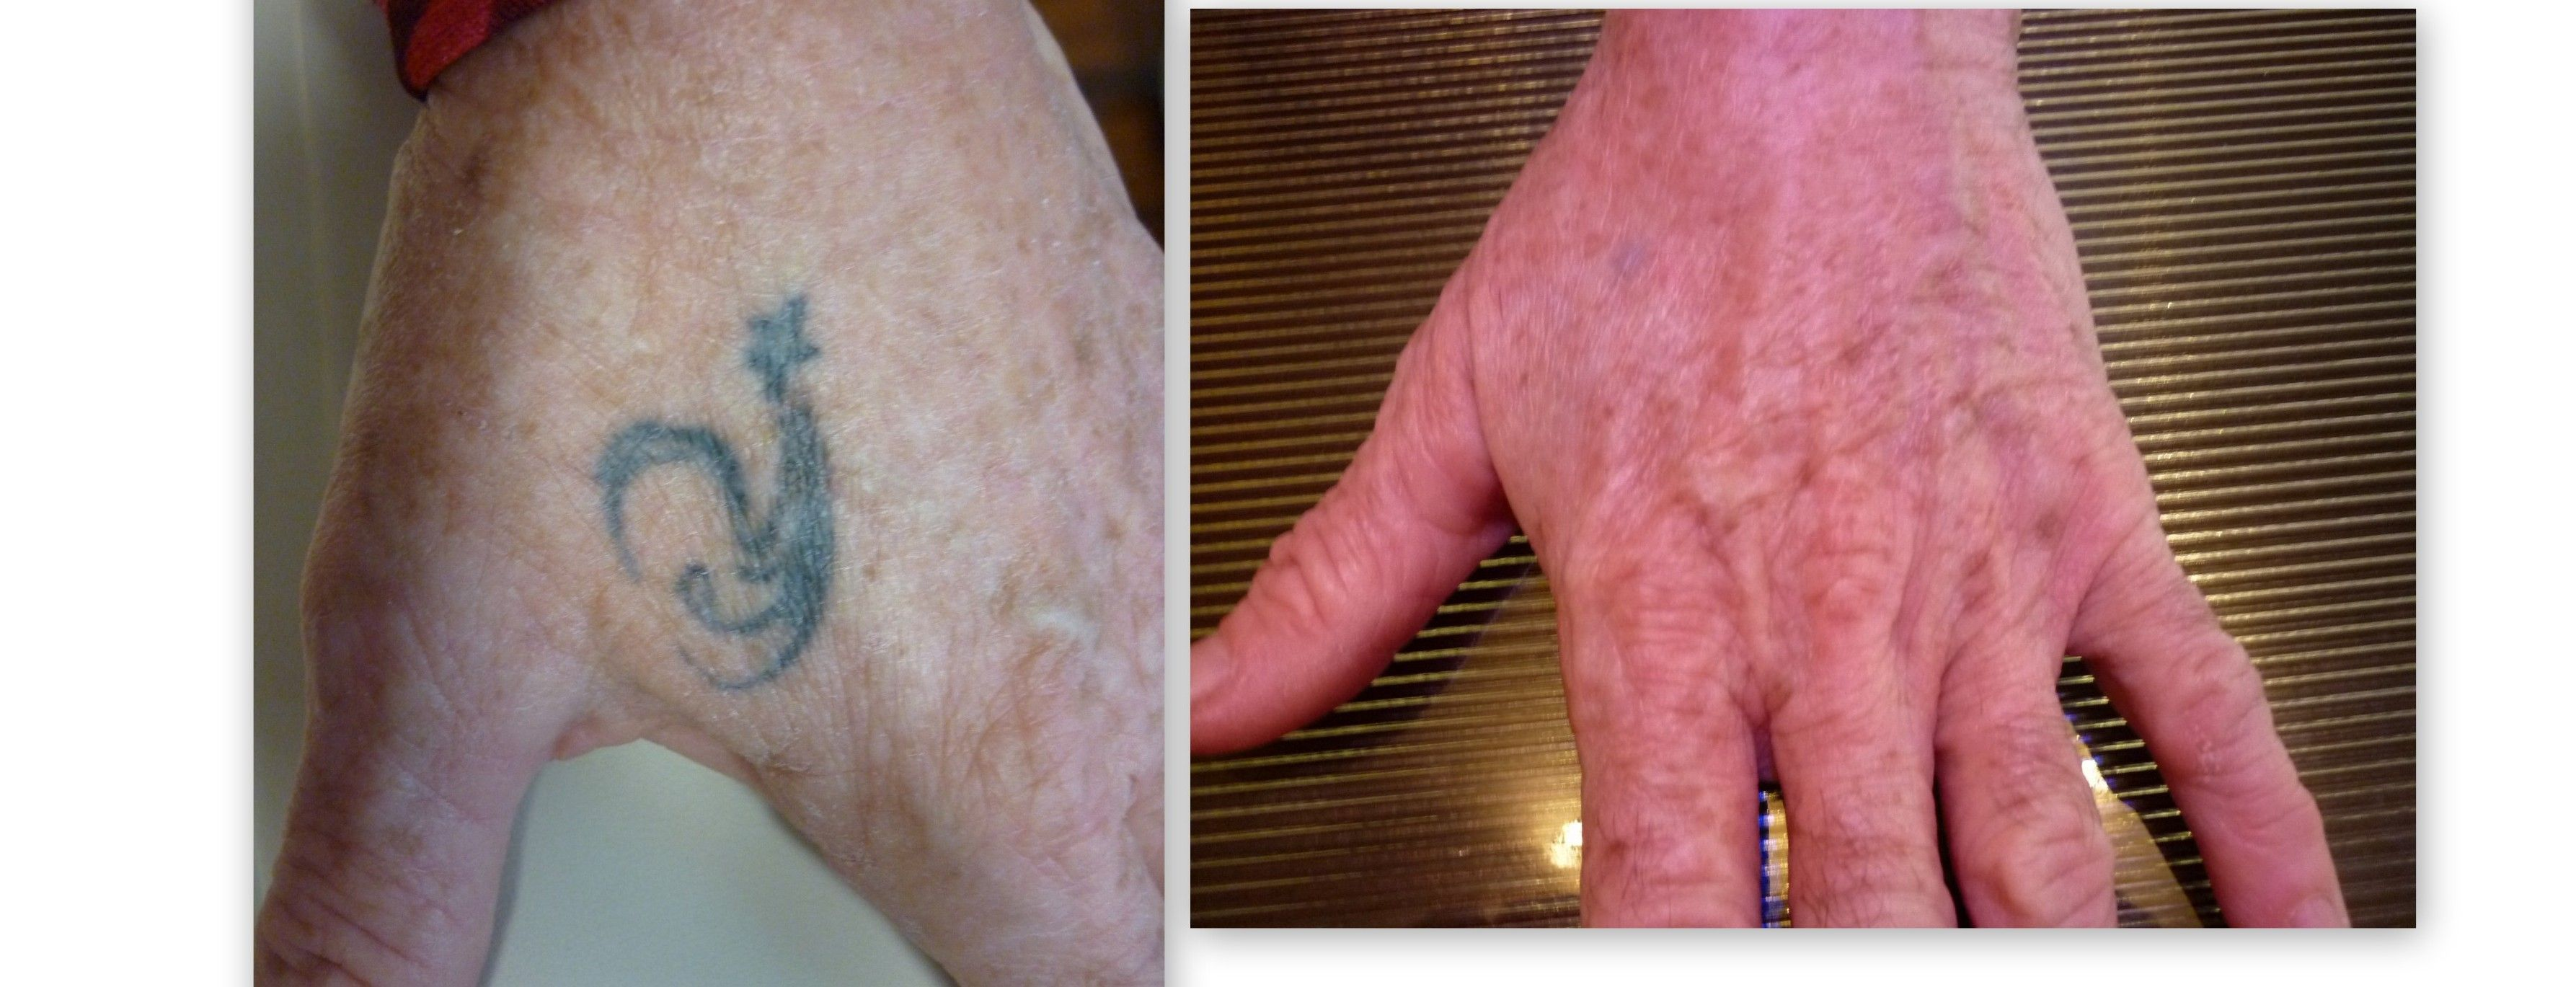 Laser tattoo removal before after 6 treatments on the